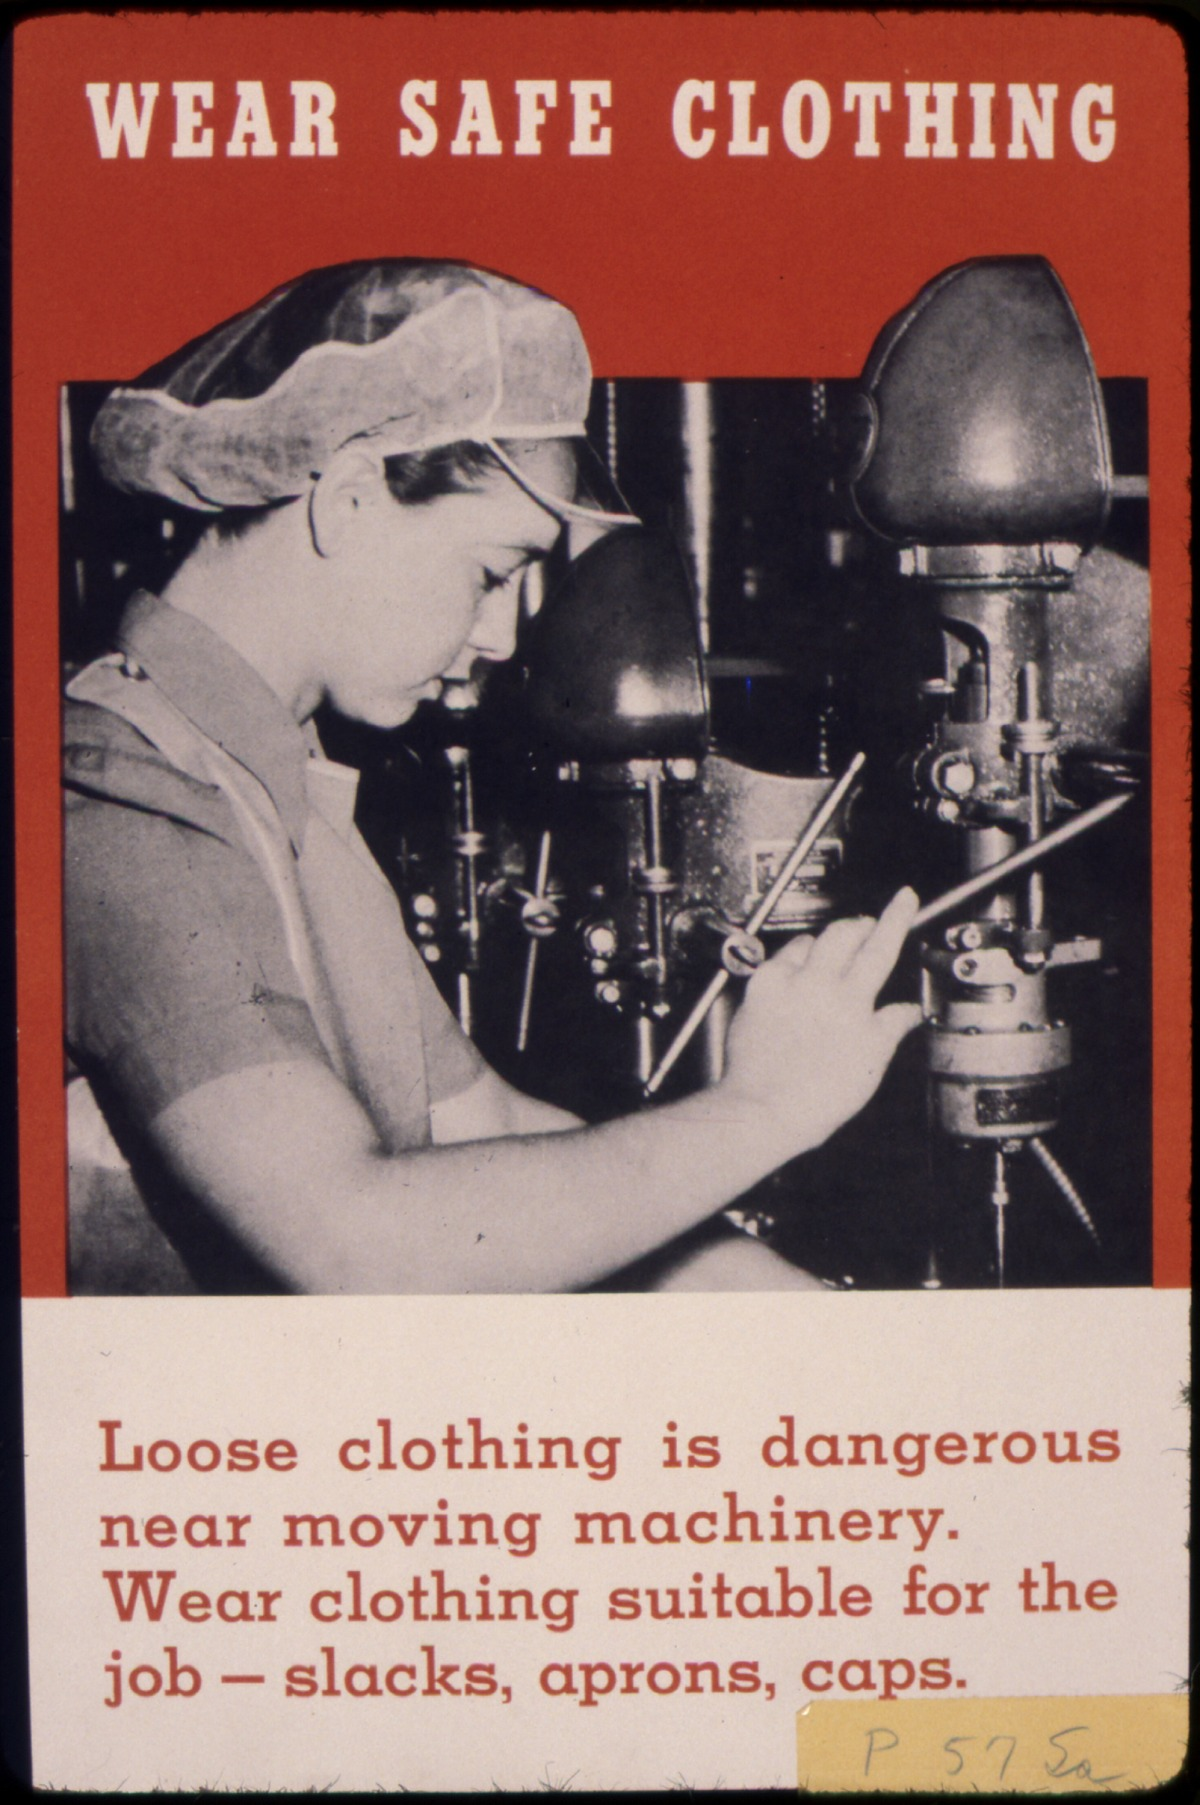 Wear_safe_clothing._Loose_clothing_is_dangerous_near_moving_machinery._Wear_clothing_suitable_for_the_job_-_slacks..._-_NARA_-_535279